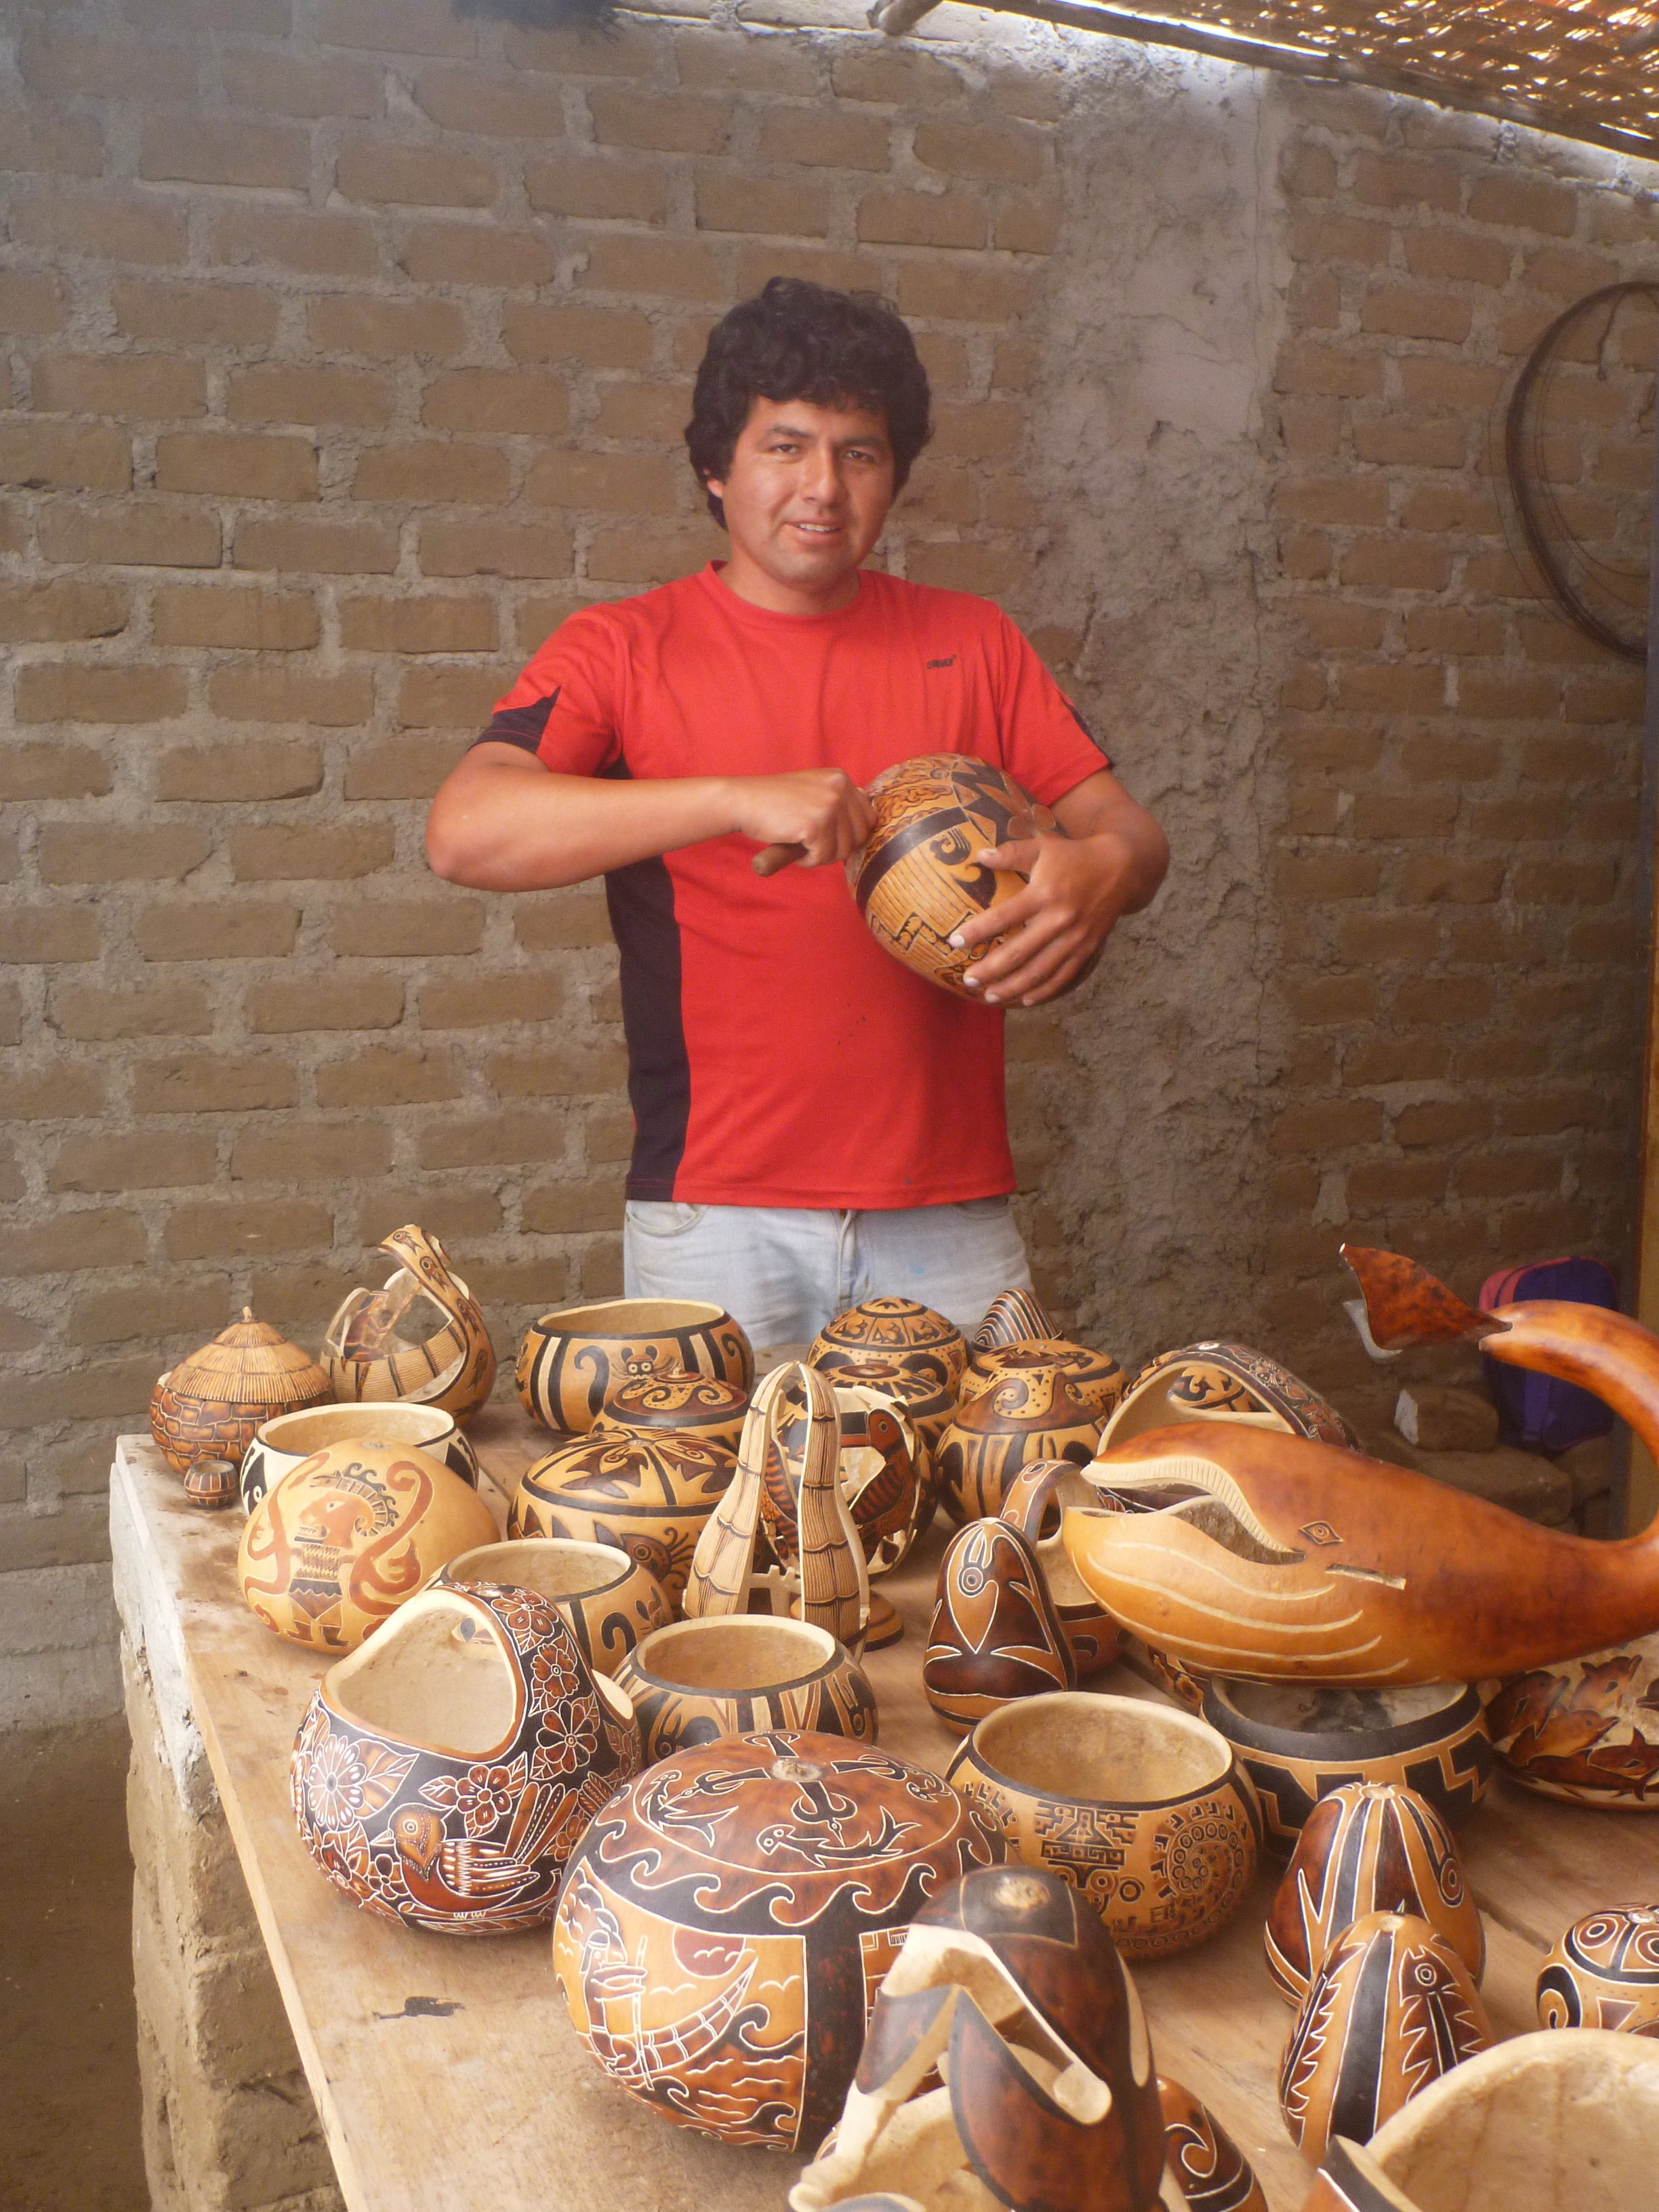 The Project   In 2012, SPI provided a grant to Pampas Gramalote for artisanal and touristic development around the site and in the local community. The project invested in local resident and master-craftsman Ivan Cruz, to expand his gourd carving business and spread his experience with new artisans in the community. Alongside this, SPI provided infrastructure for an artisan training center, and new space for retail and exhibitions about the site for locals and tourists.